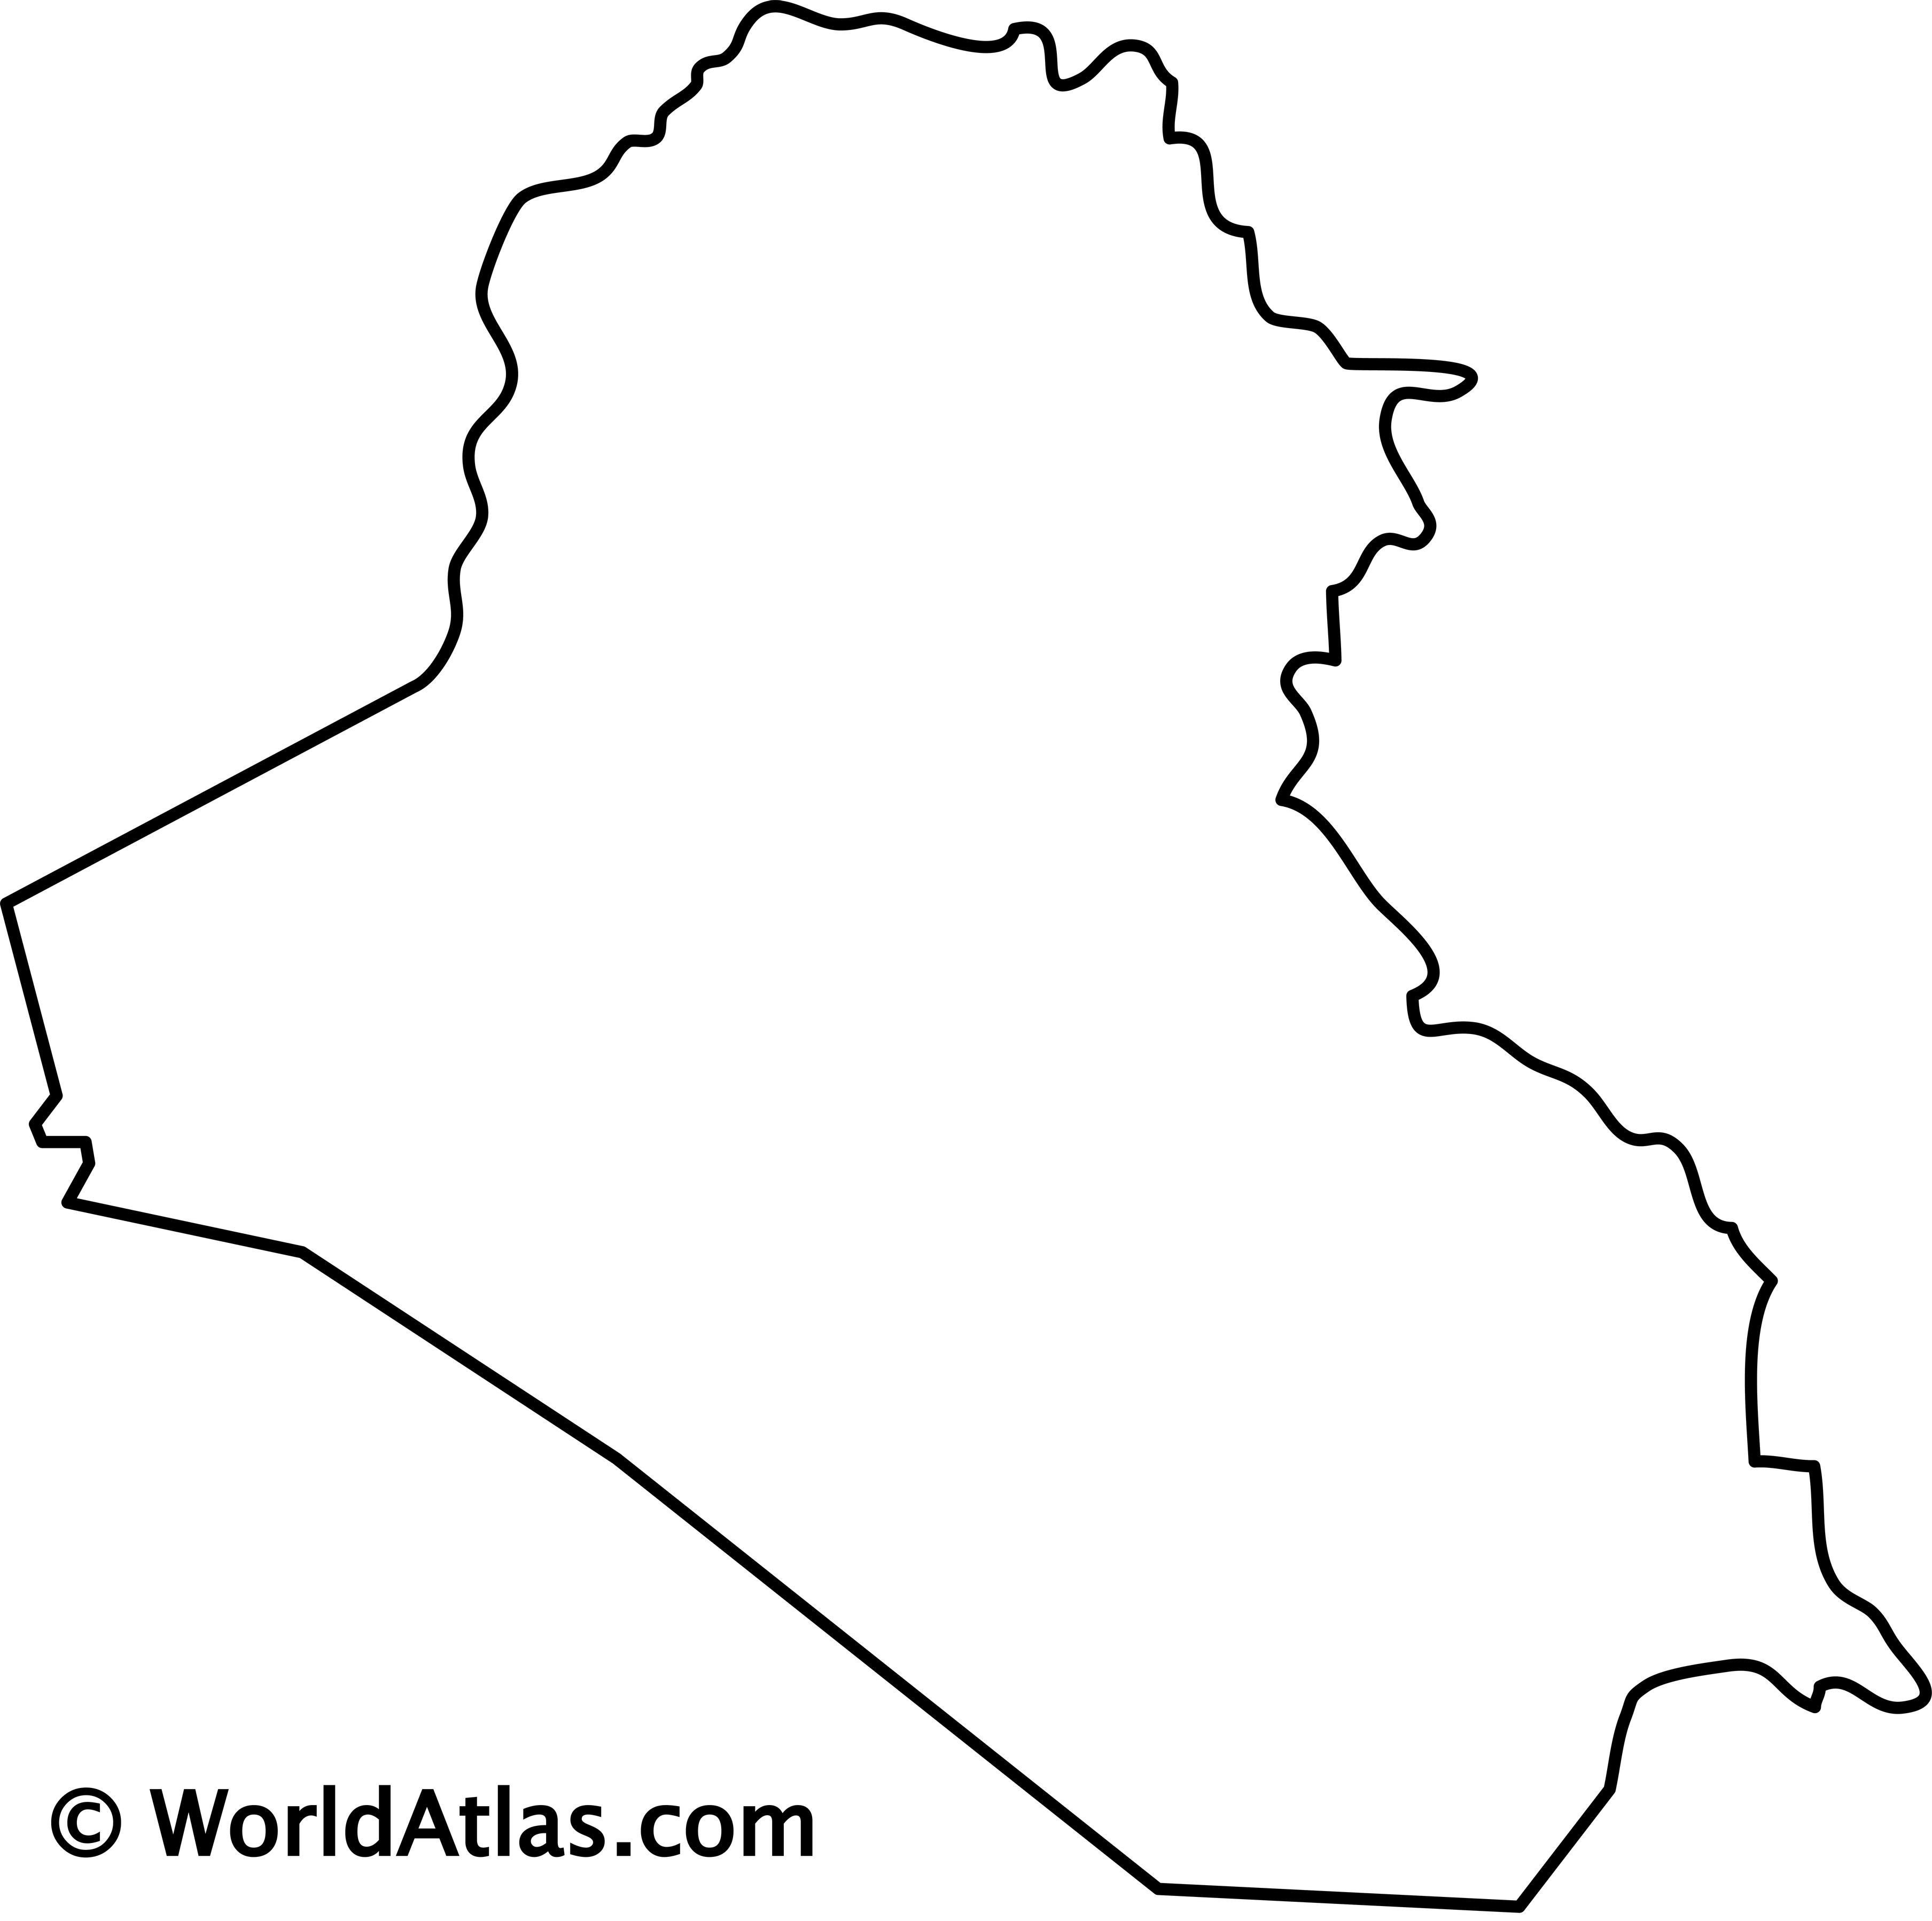 Blank Outline Map of Iraq